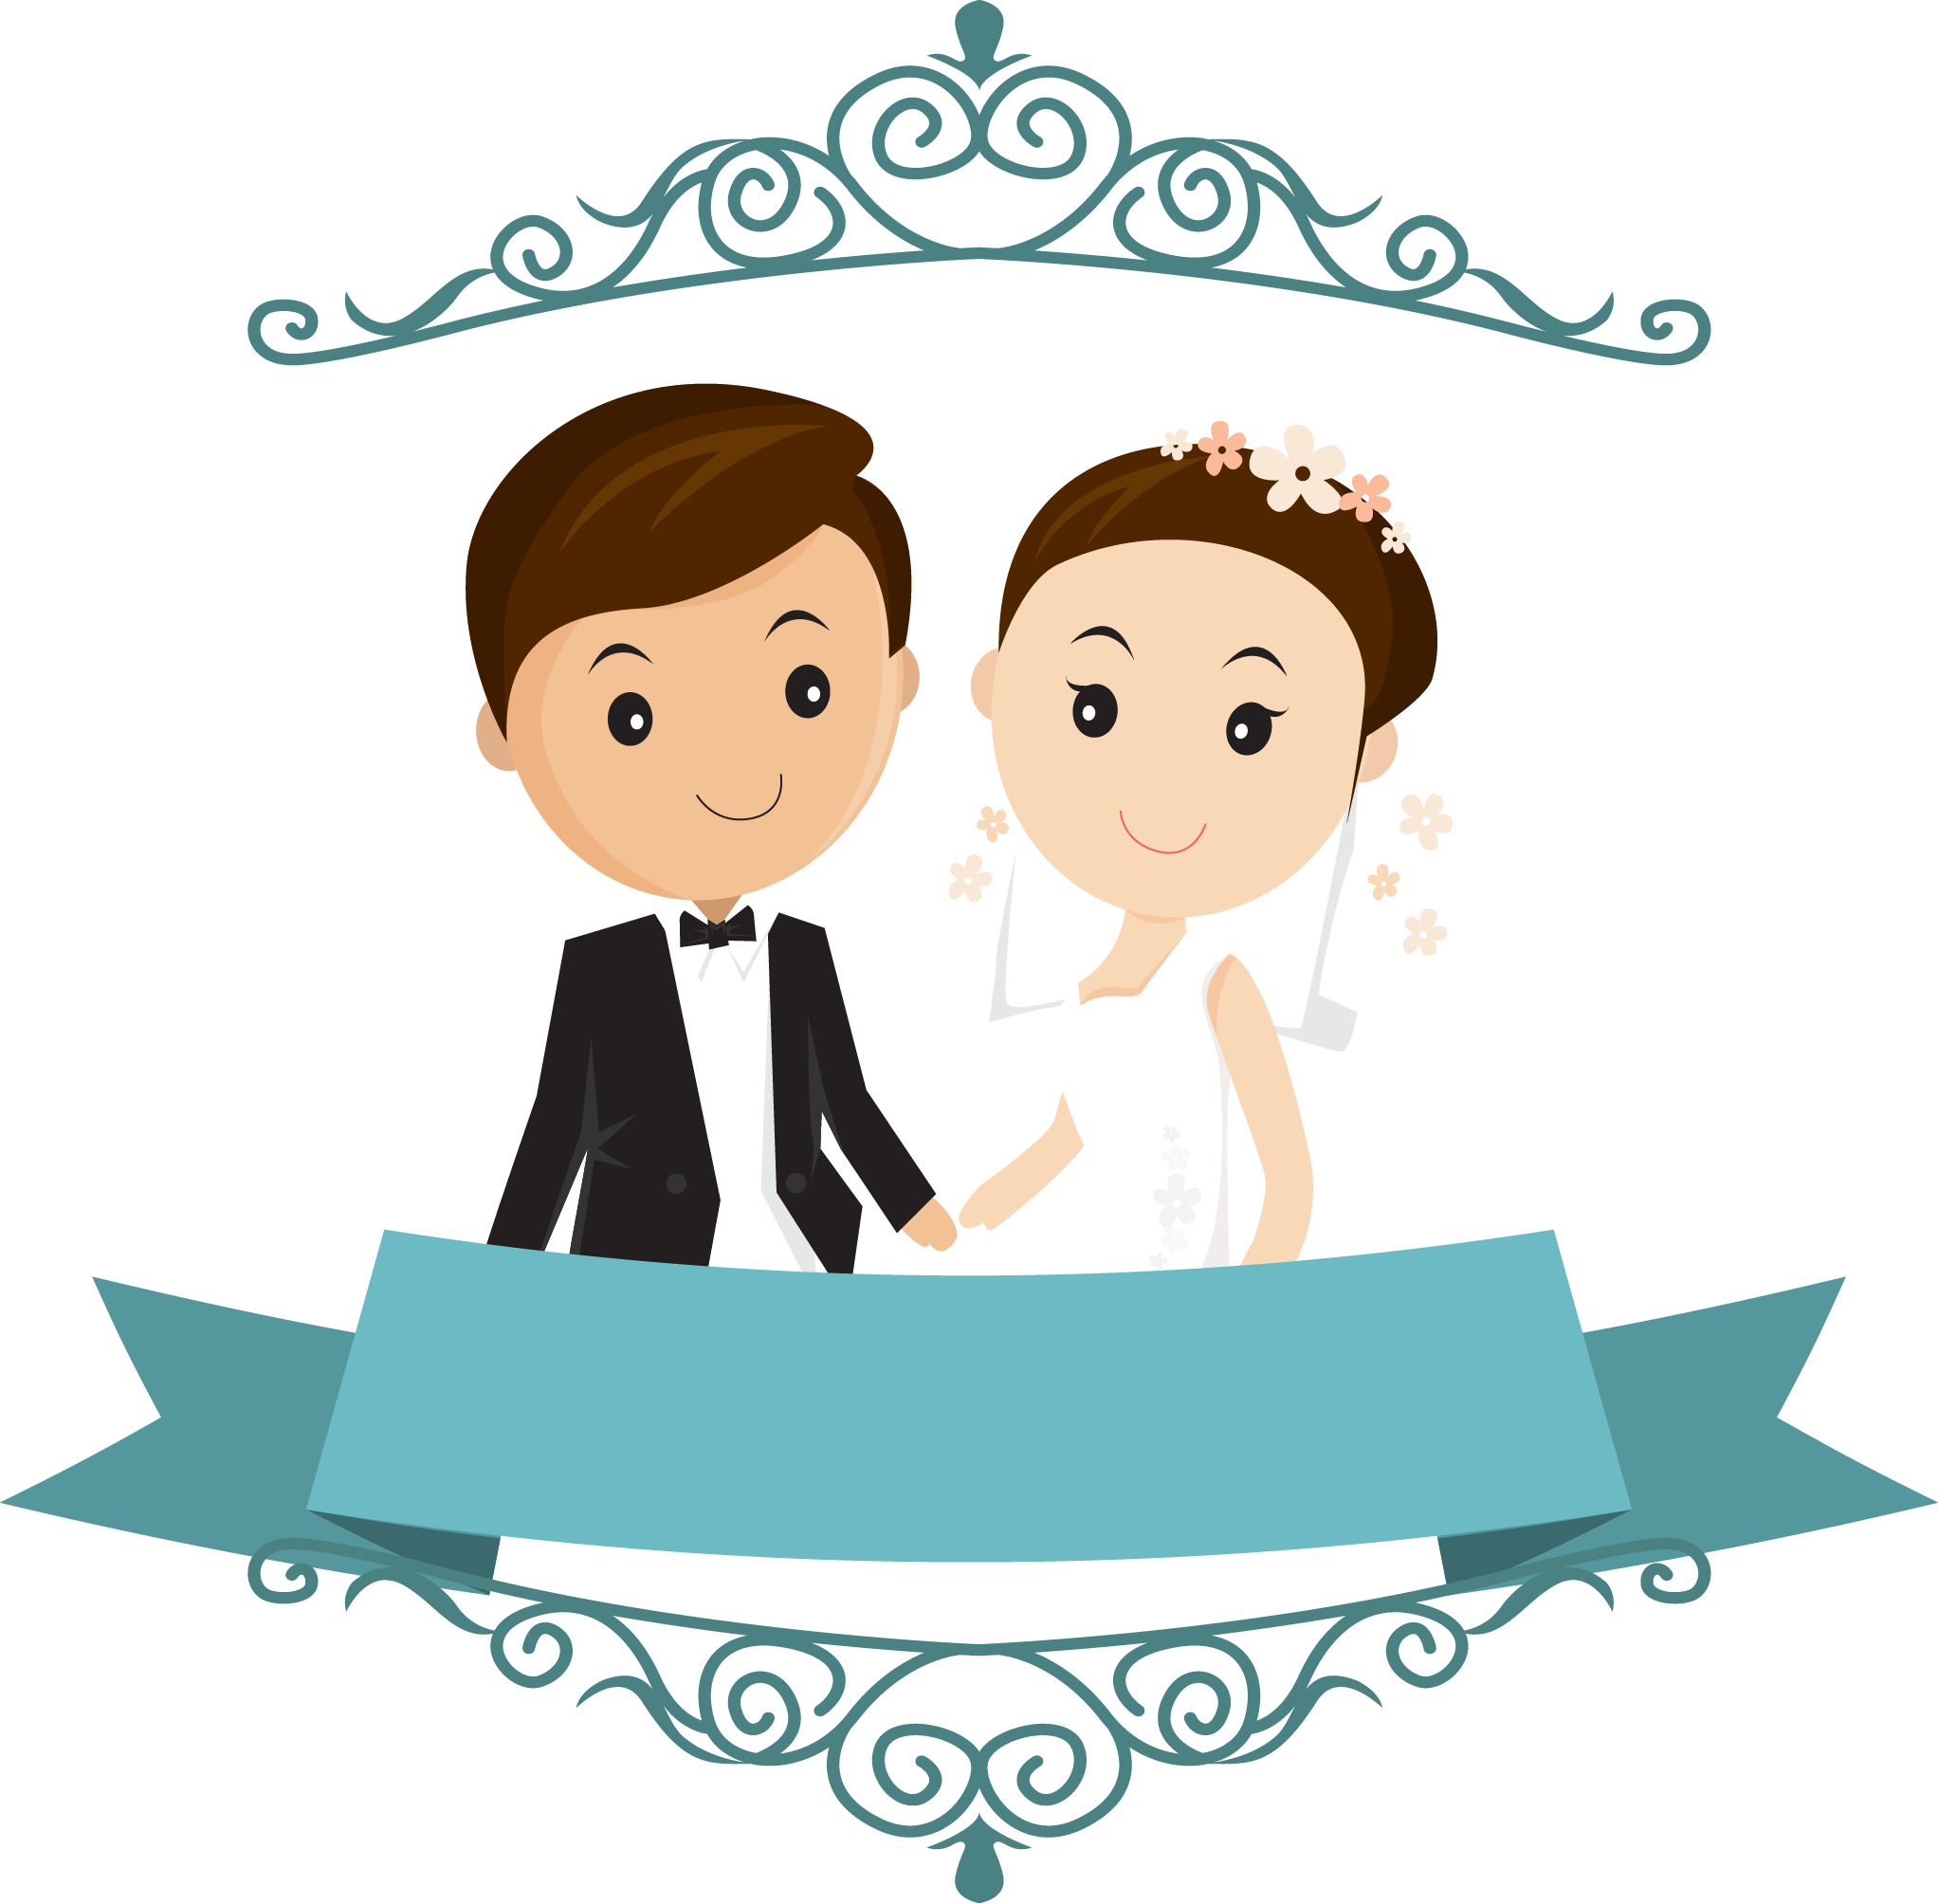 Wedding Free Png Images & Free Wedding Images.png.